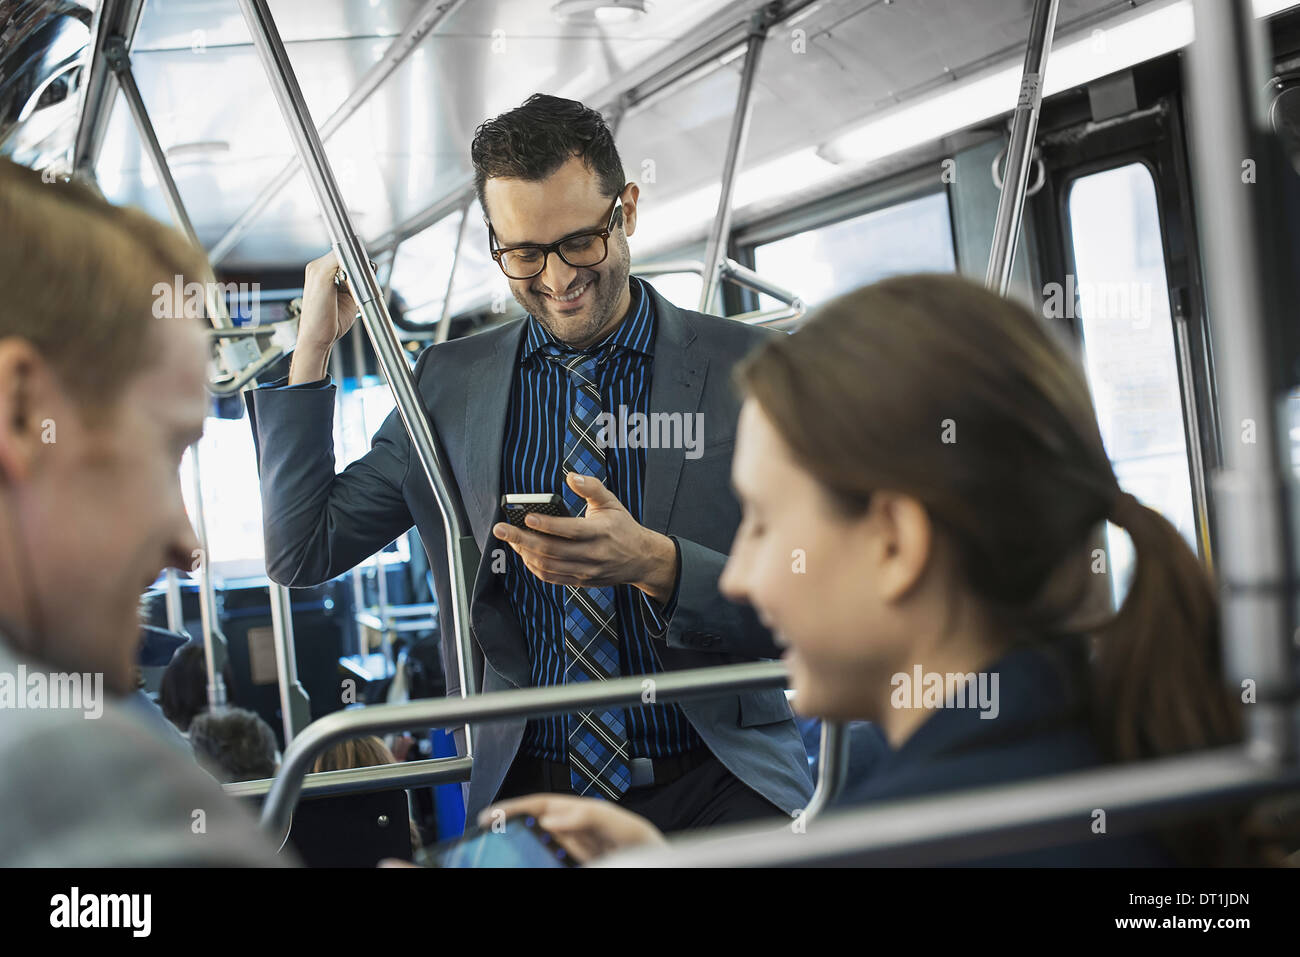 Three people on the move two men and a woman on the bus - Stock Image